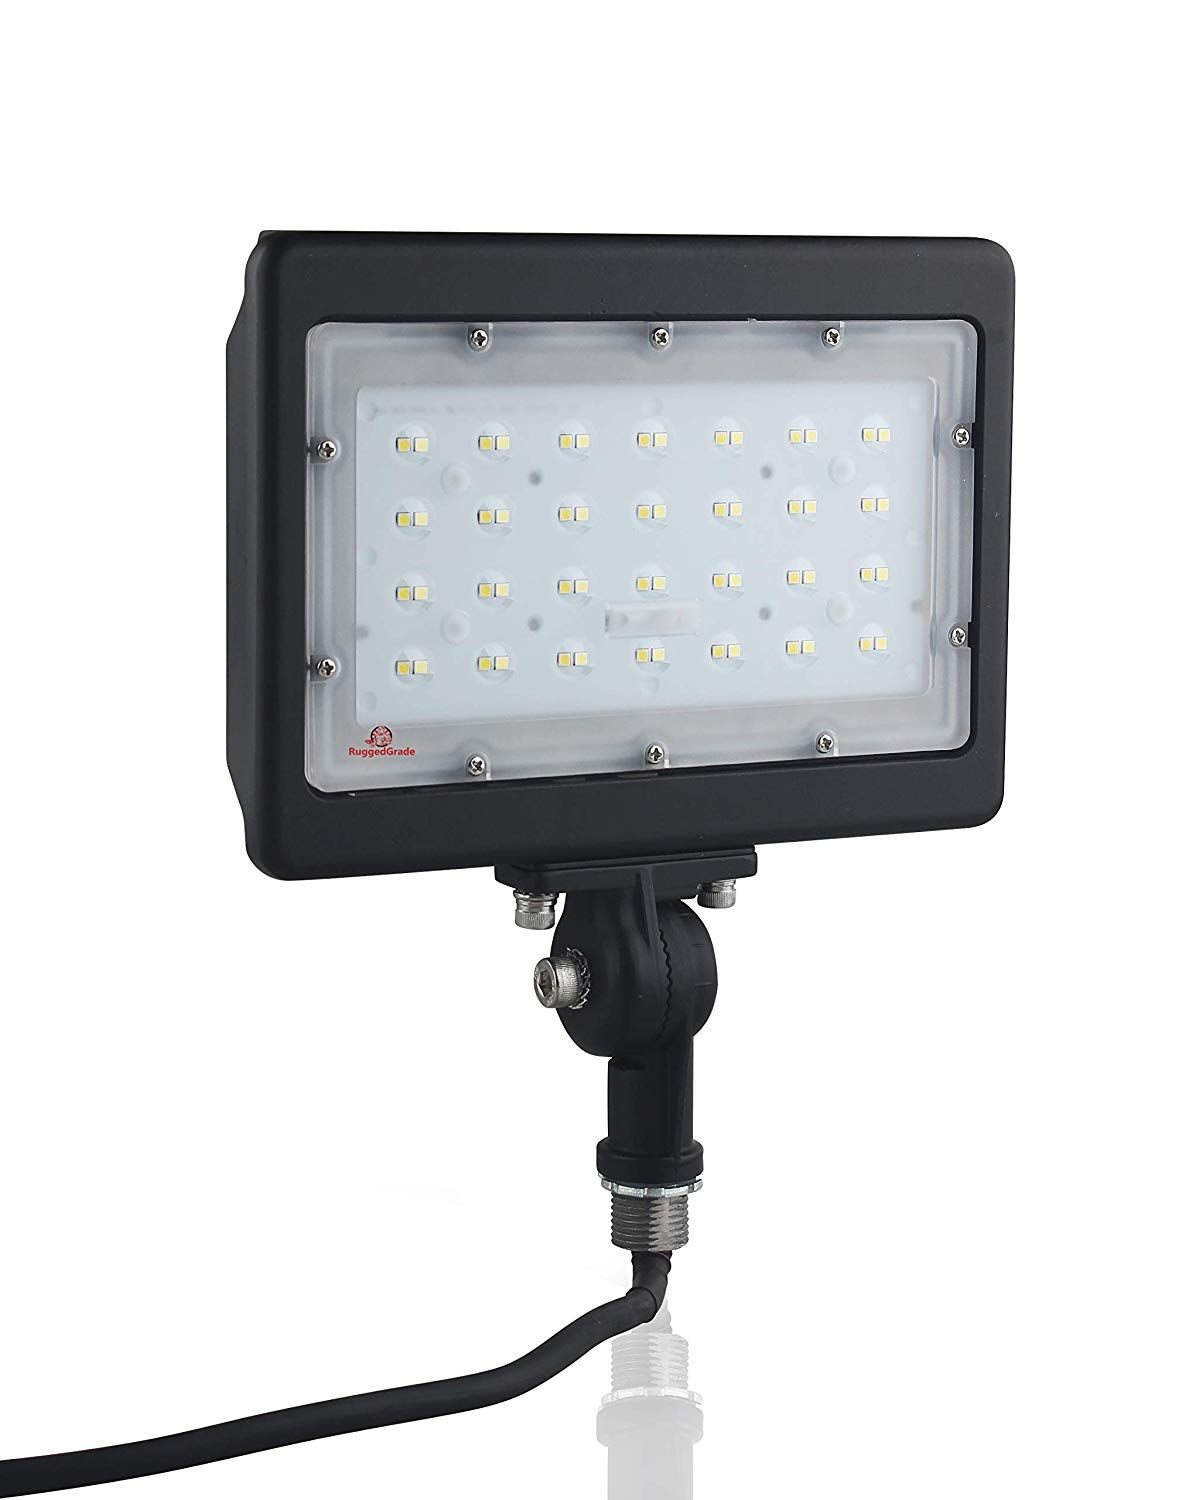 50 Watt Led Flood Light Kivo Series Led Flood Lights 6 000 Lumens 50 Watt Led Flood Light 5000k Knuckle Mou With Images Led Flood Lights Flood Lights Led Flood